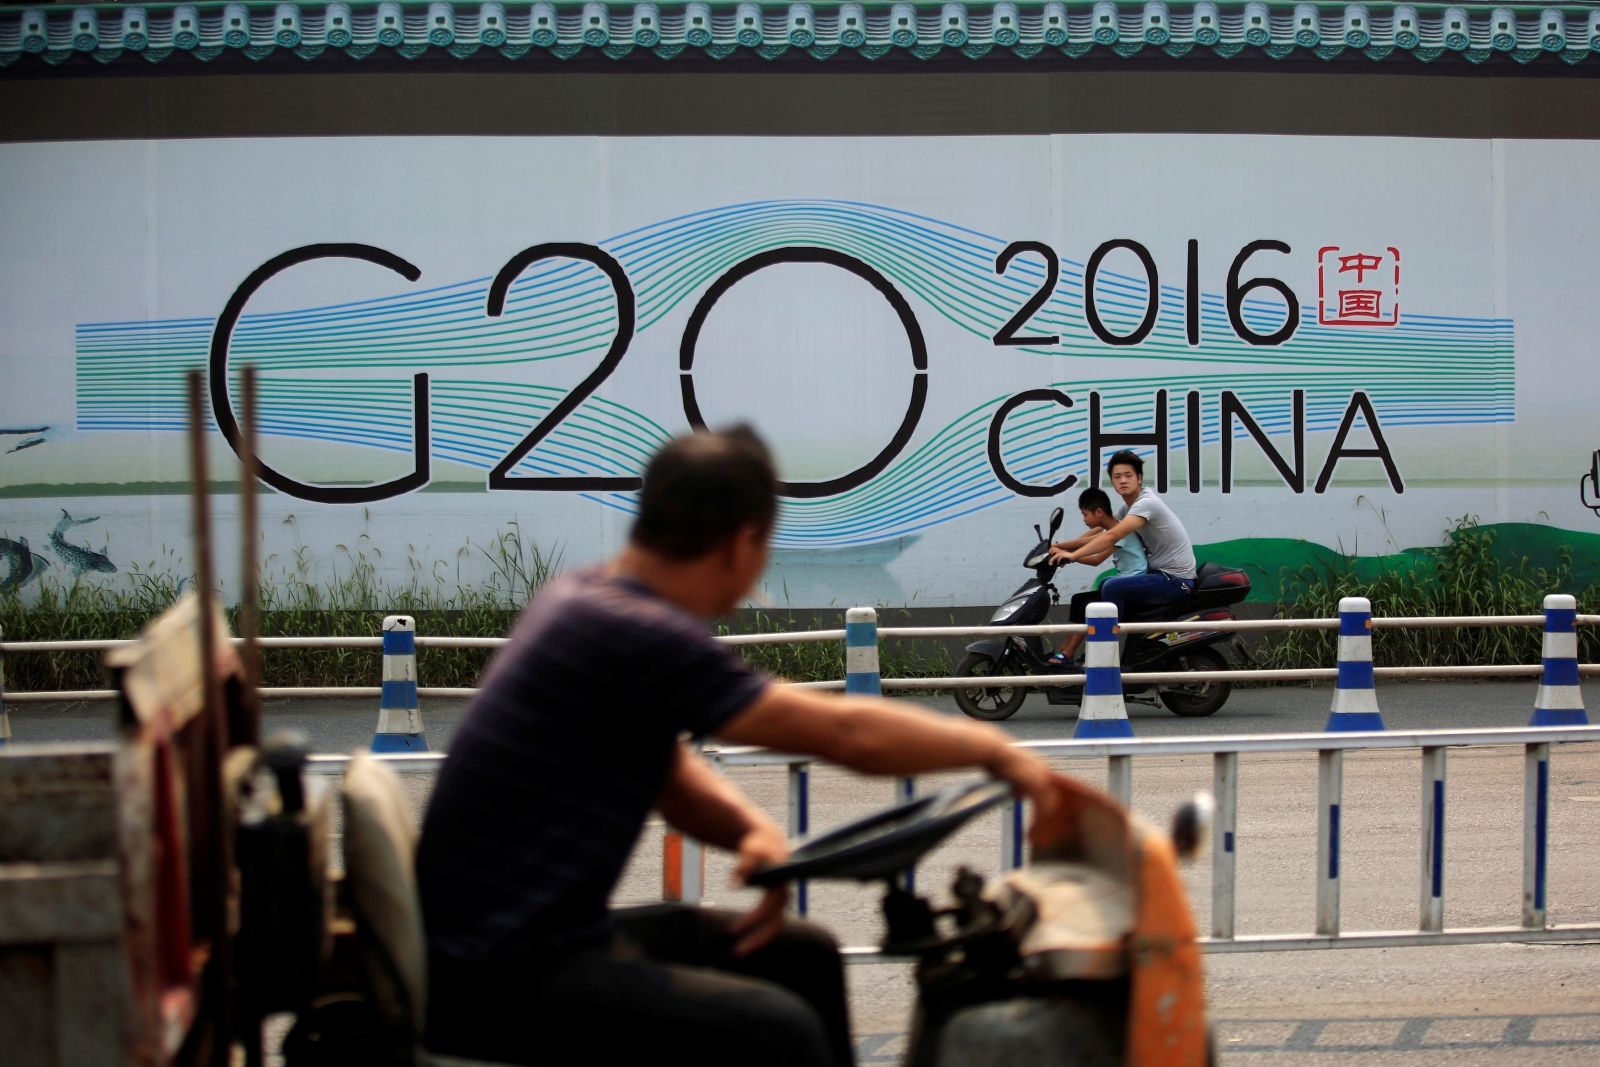 G20 Hangzhou summit 2016